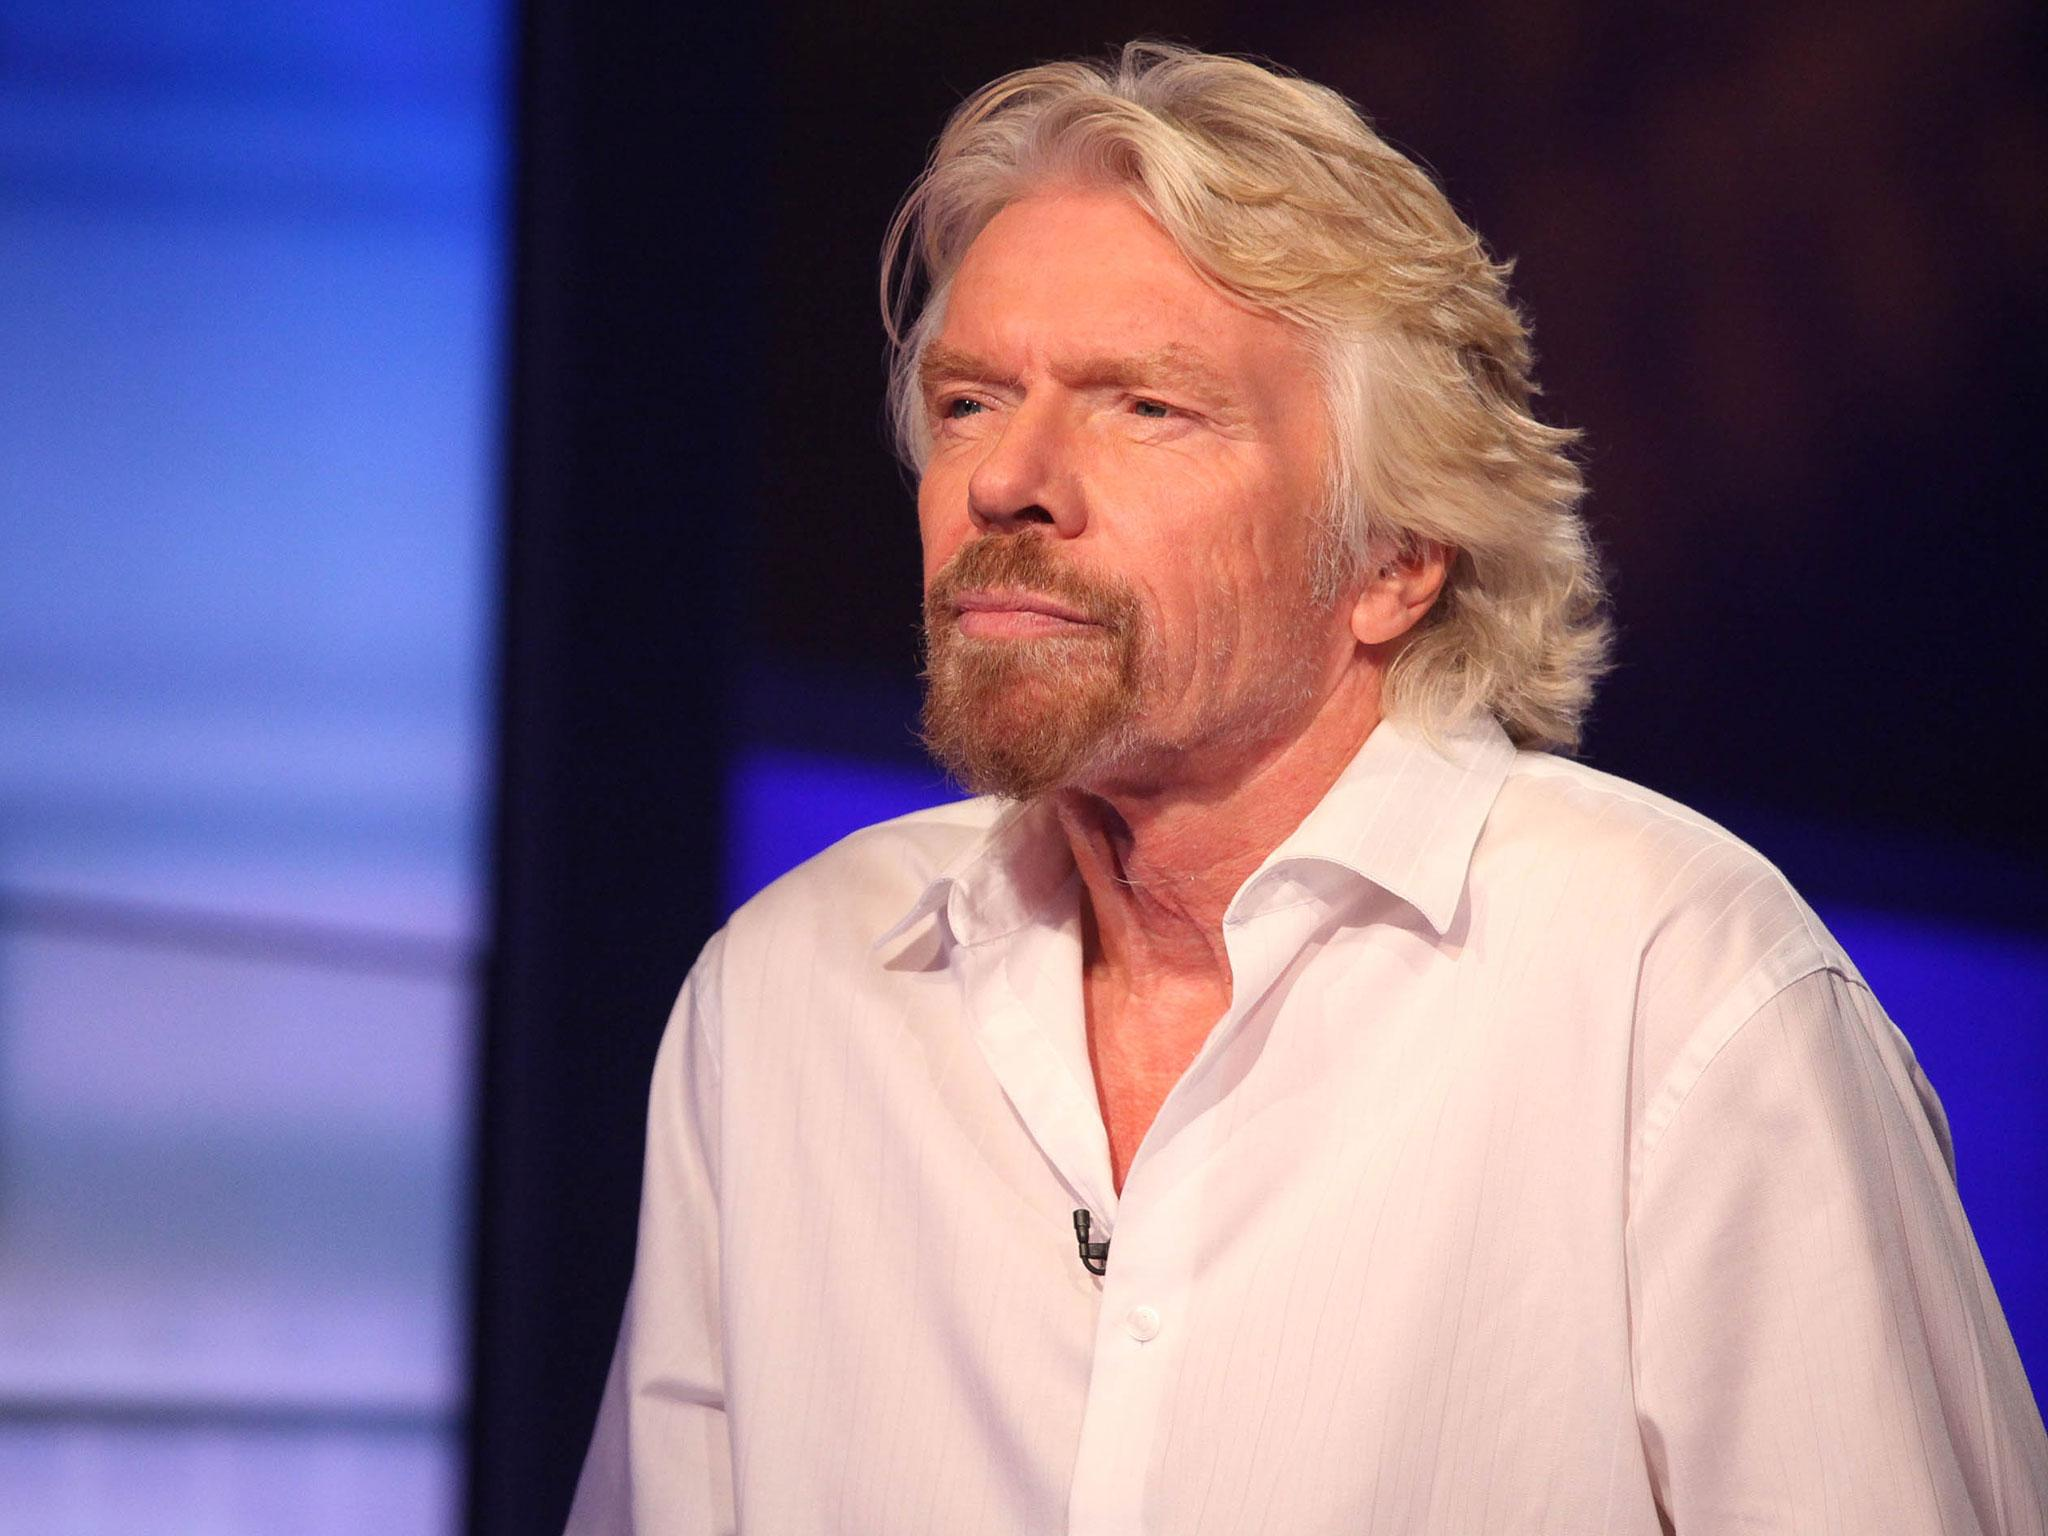 Dyslexia should be recognised as a sign of potential, says Richard Branson | The Independent